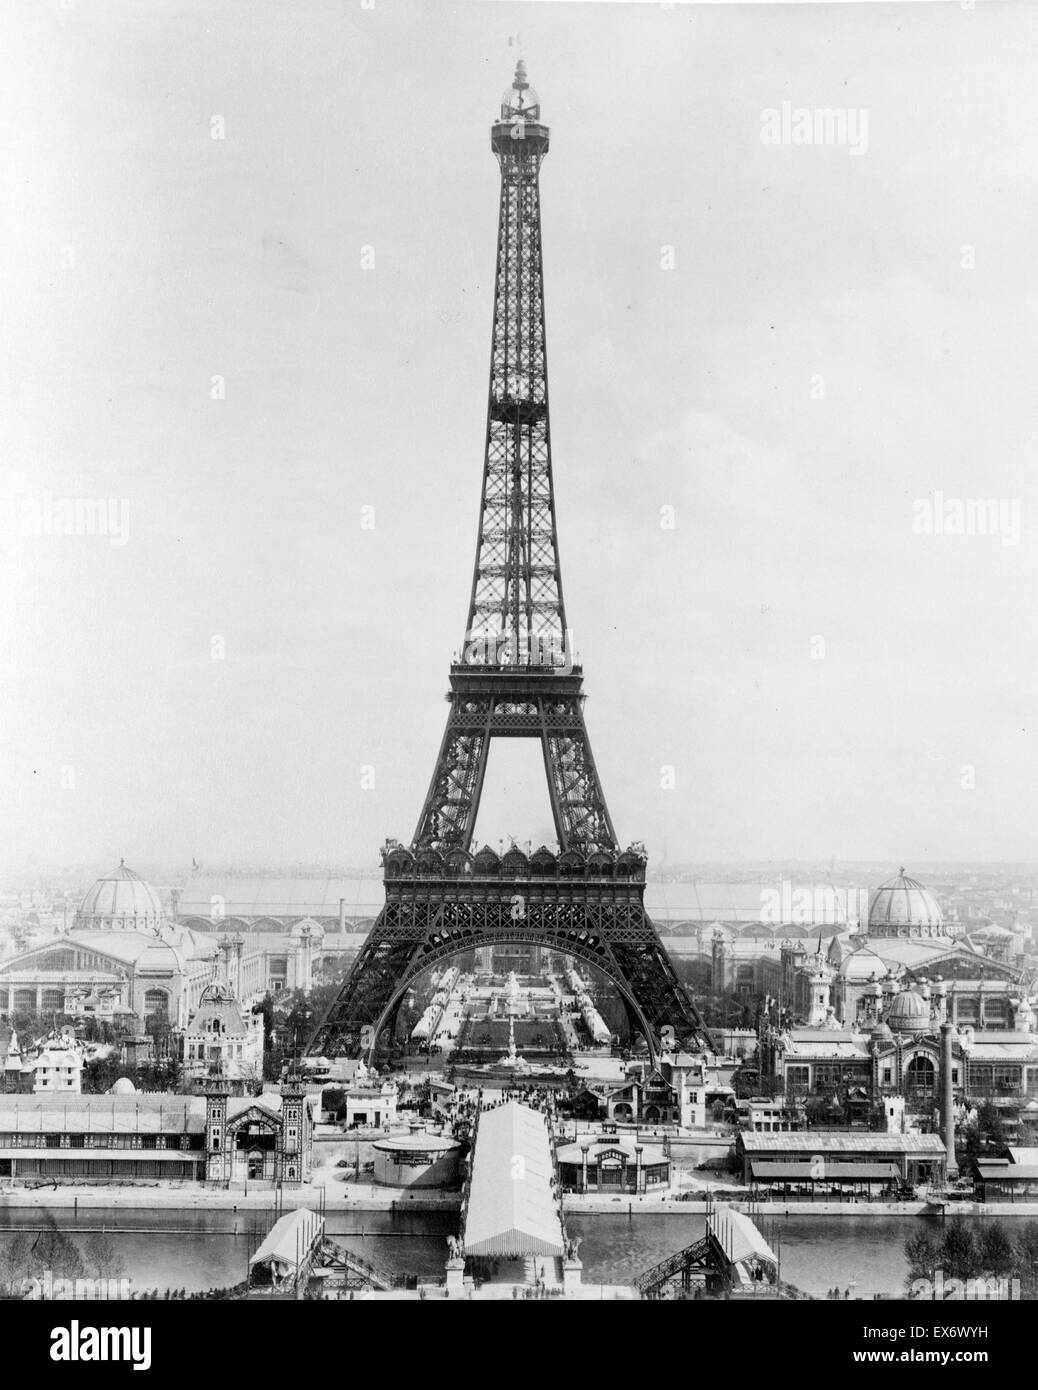 Photographic print of the Eiffel Tower. Dated 1889 - Stock Image